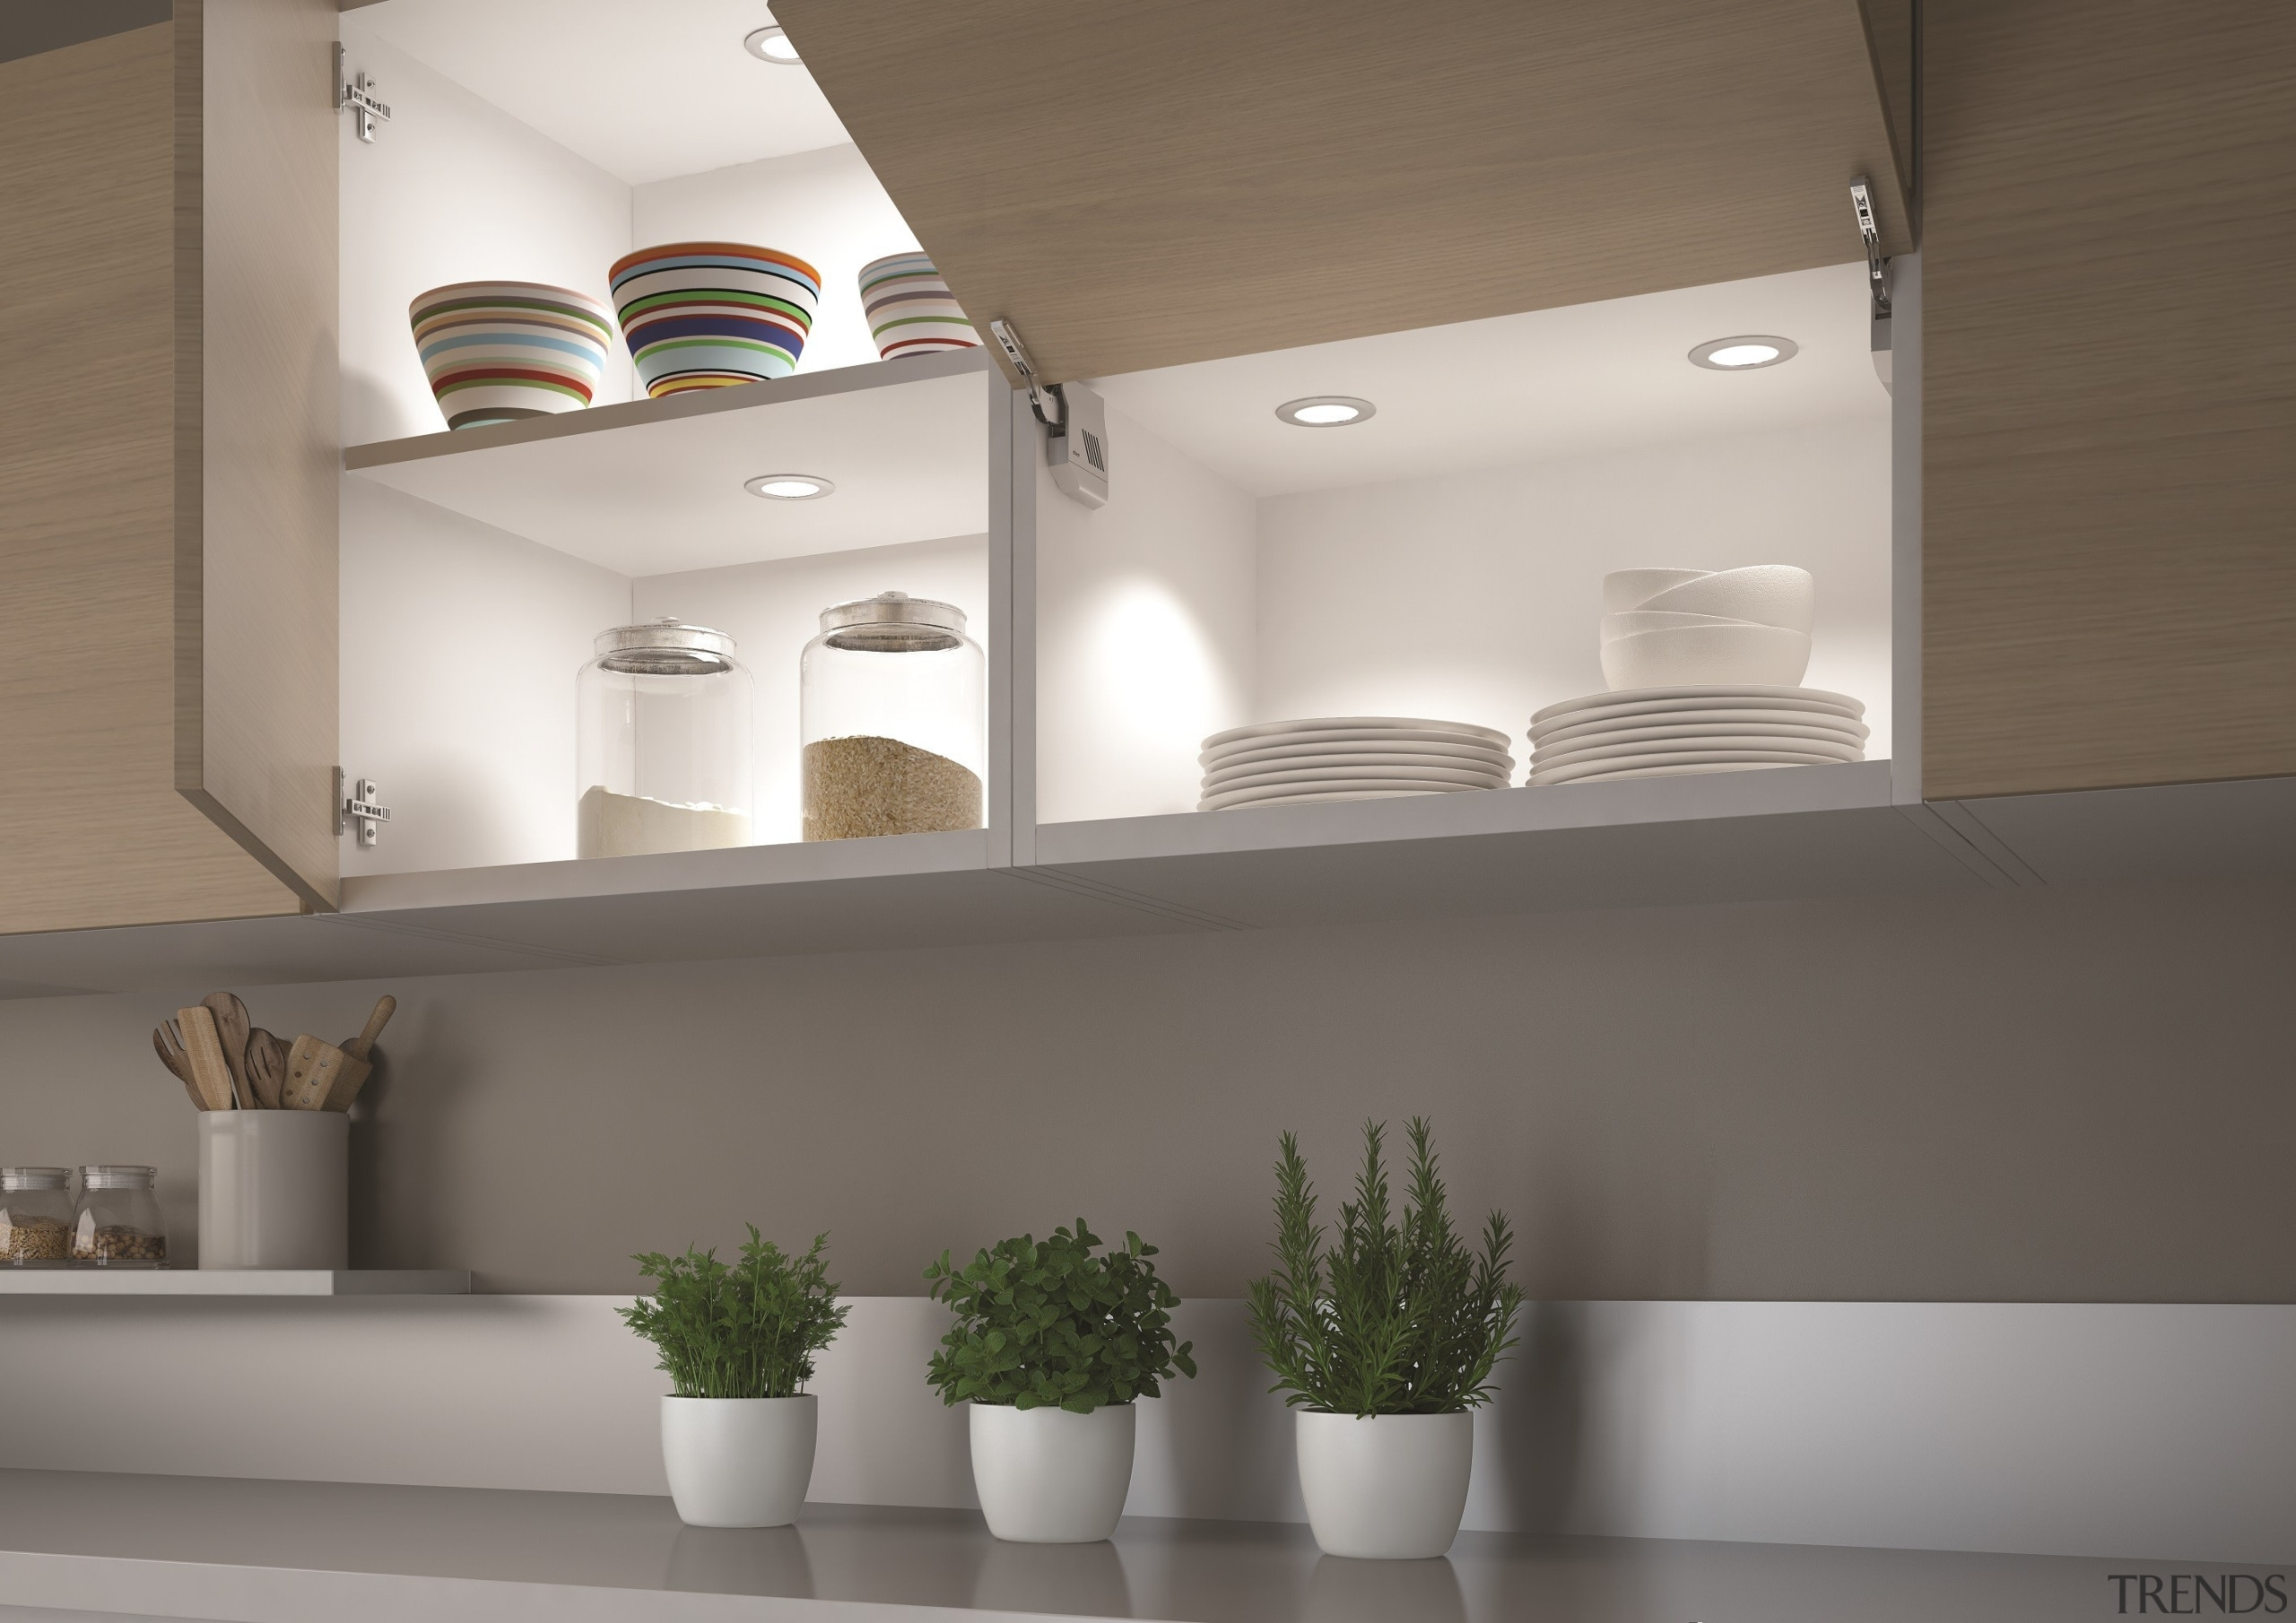 Smally collection - innovative LED spotlights with 33 architecture, ceiling, home, interior design, light fixture, product design, shelf, shelving, tap, gray